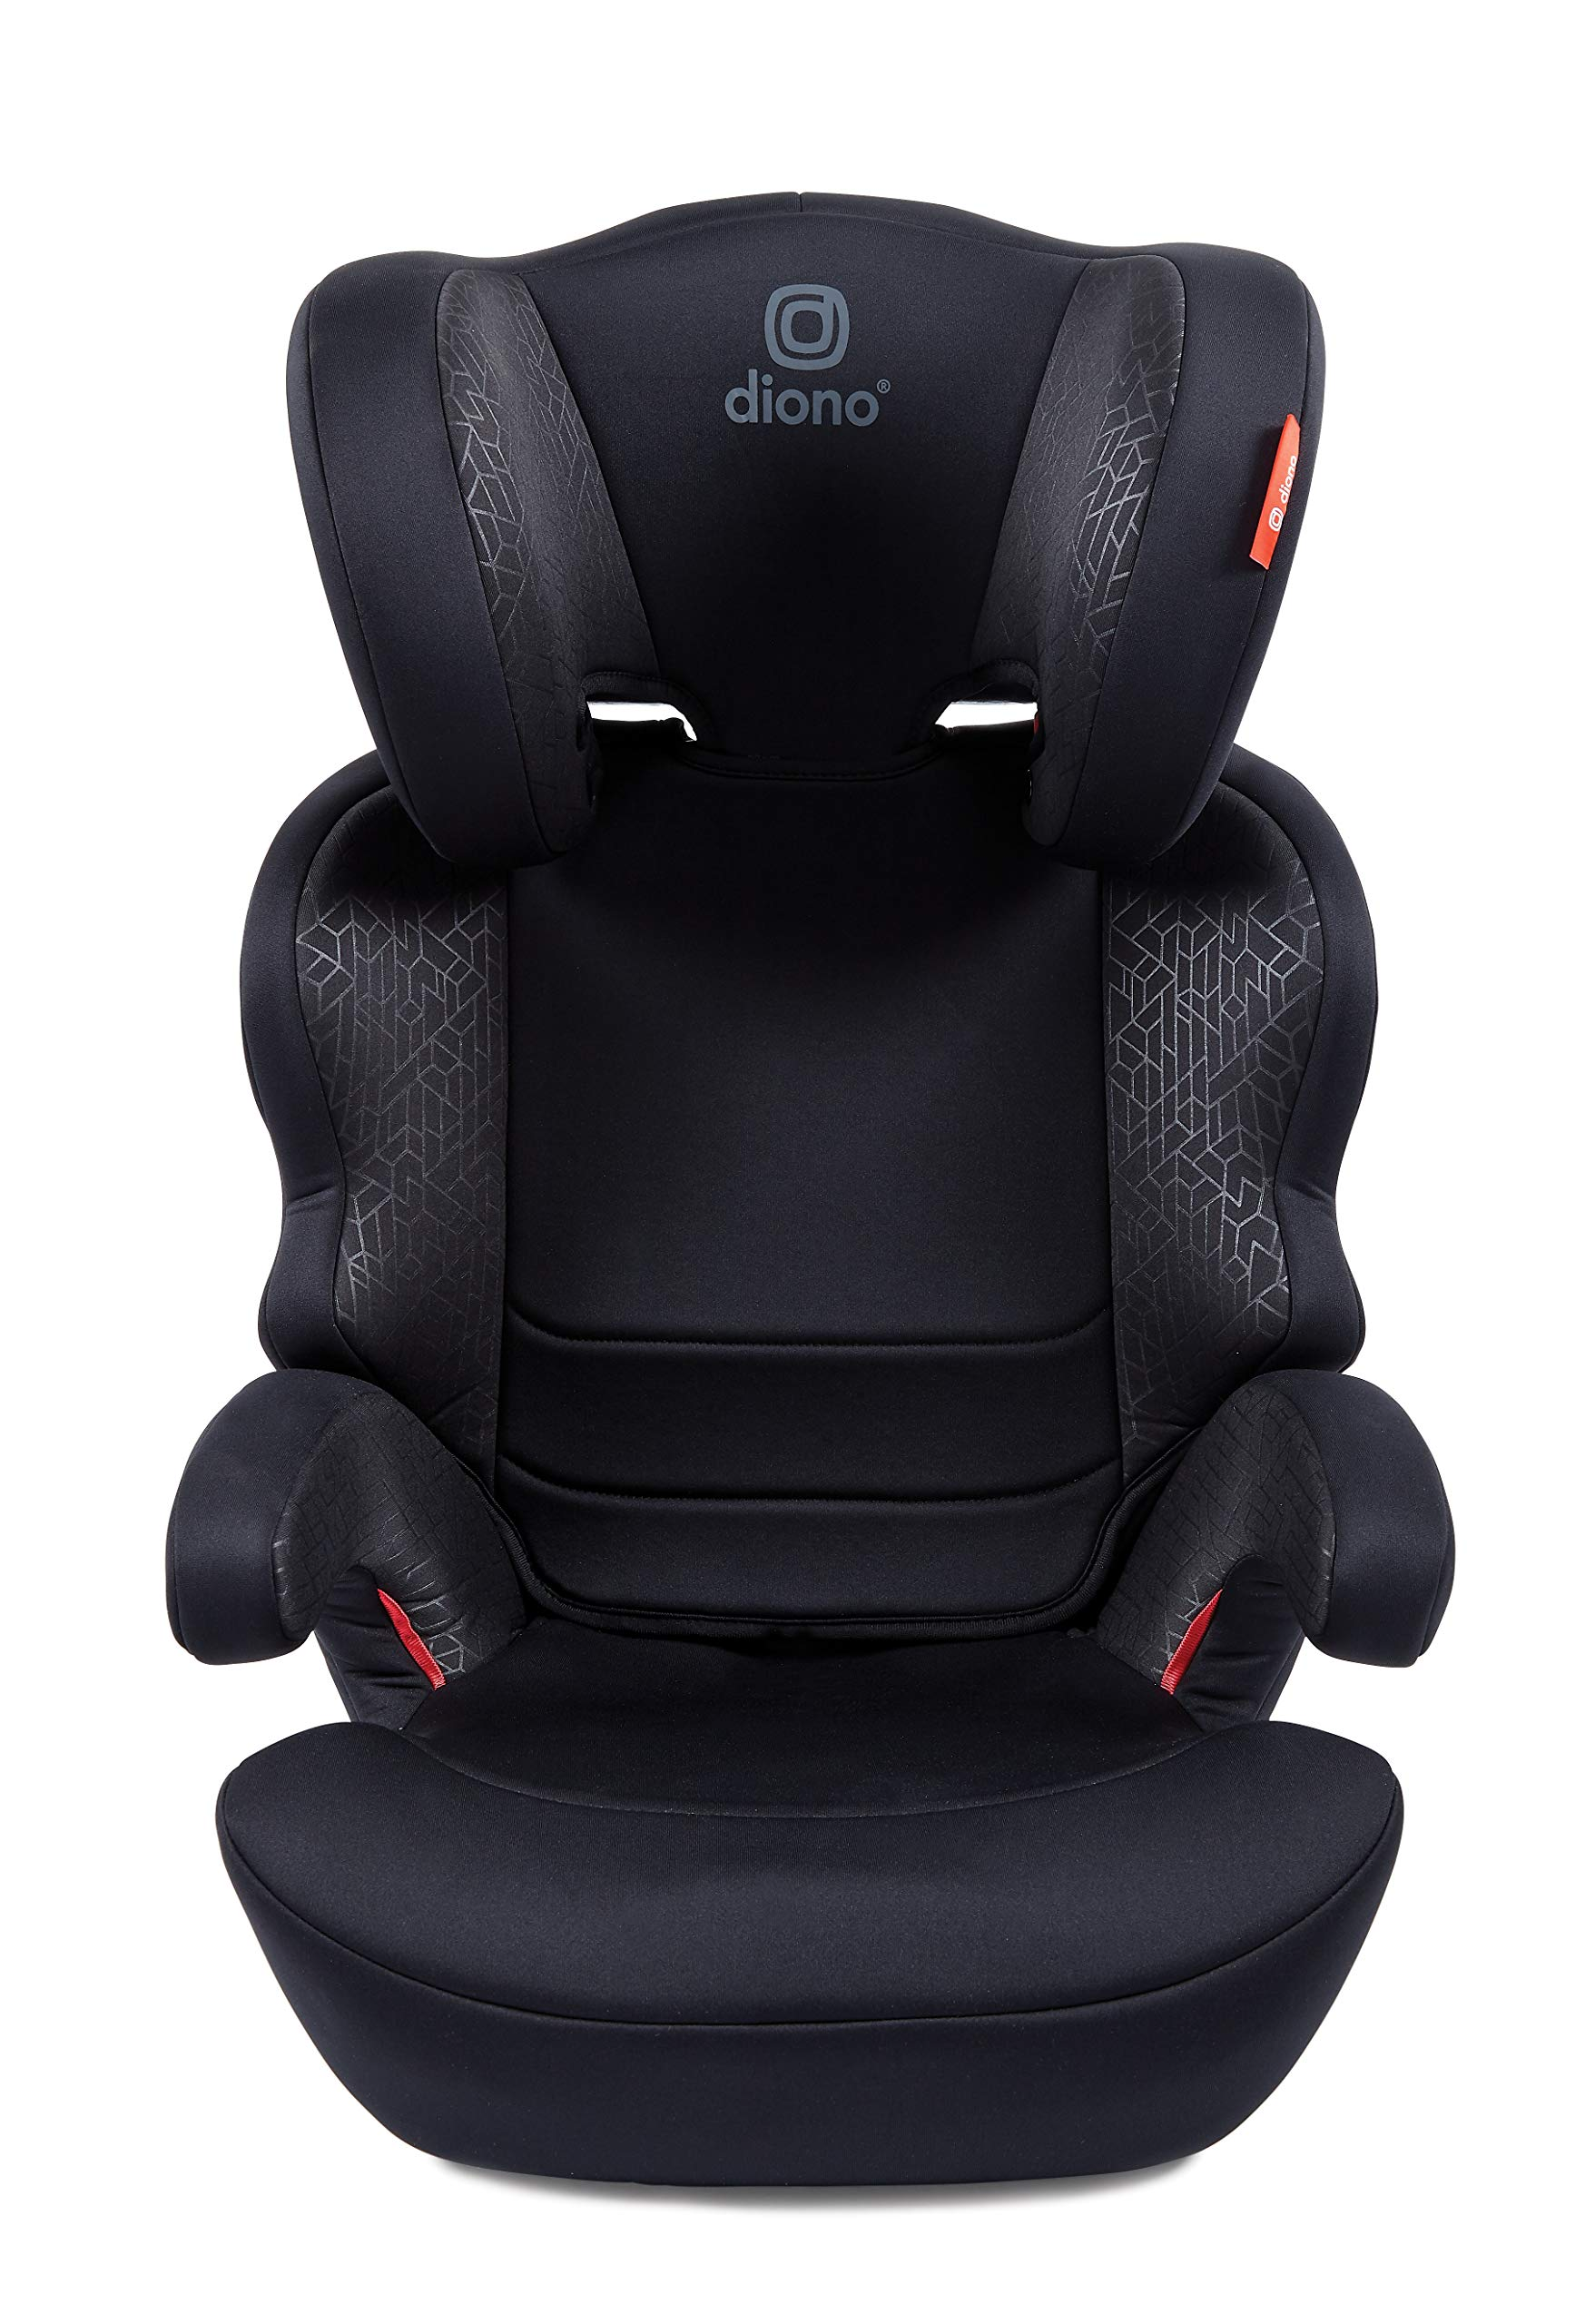 Diono Everett NXT Fix Highback Booster Seat - 7 Position Adjustable Headrest, Group 2/3 (15 - 36 kg and Up to 160 cm In Height), Approx. 4-12 Years, Black Diono Designed to grow: group 2/3 car seat is suitable from 18kg - 50kg, approx. 4 to 12 years old. The 7-position adjustable headrest can be altered using the handle on the back of the seat Superior safety: cushioned side impact protection has been engineered and tested to the highest standards. The ergonomic design includes extra padding to provide comfort and security as a child grows Universal connectivity: parents can install the seat using the vehicle seatbelt or use the integrated rigid latch connectors that anchor the seat to the car allowing the child to buckle themselves in 3